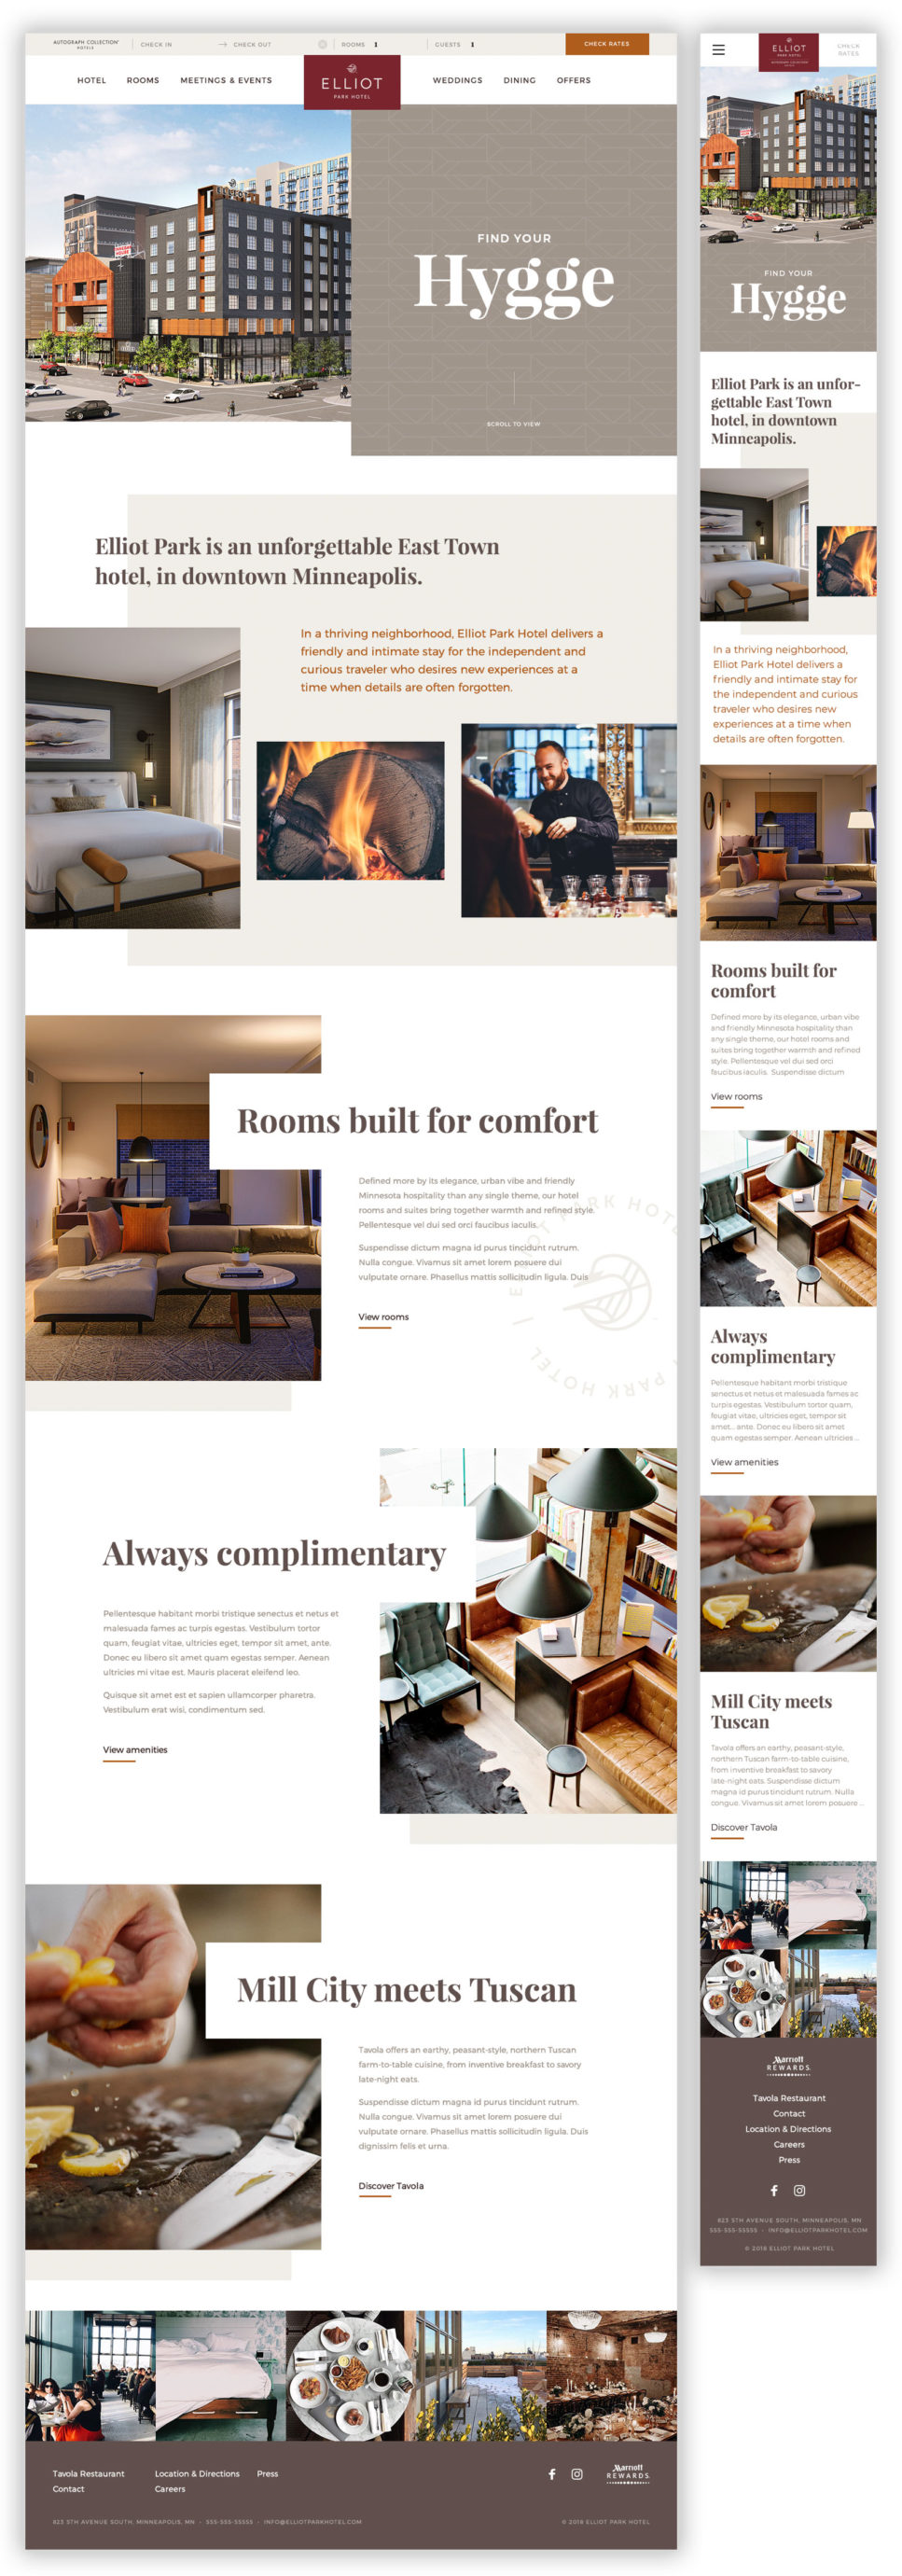 Homepage for the Elliot Park Hotel